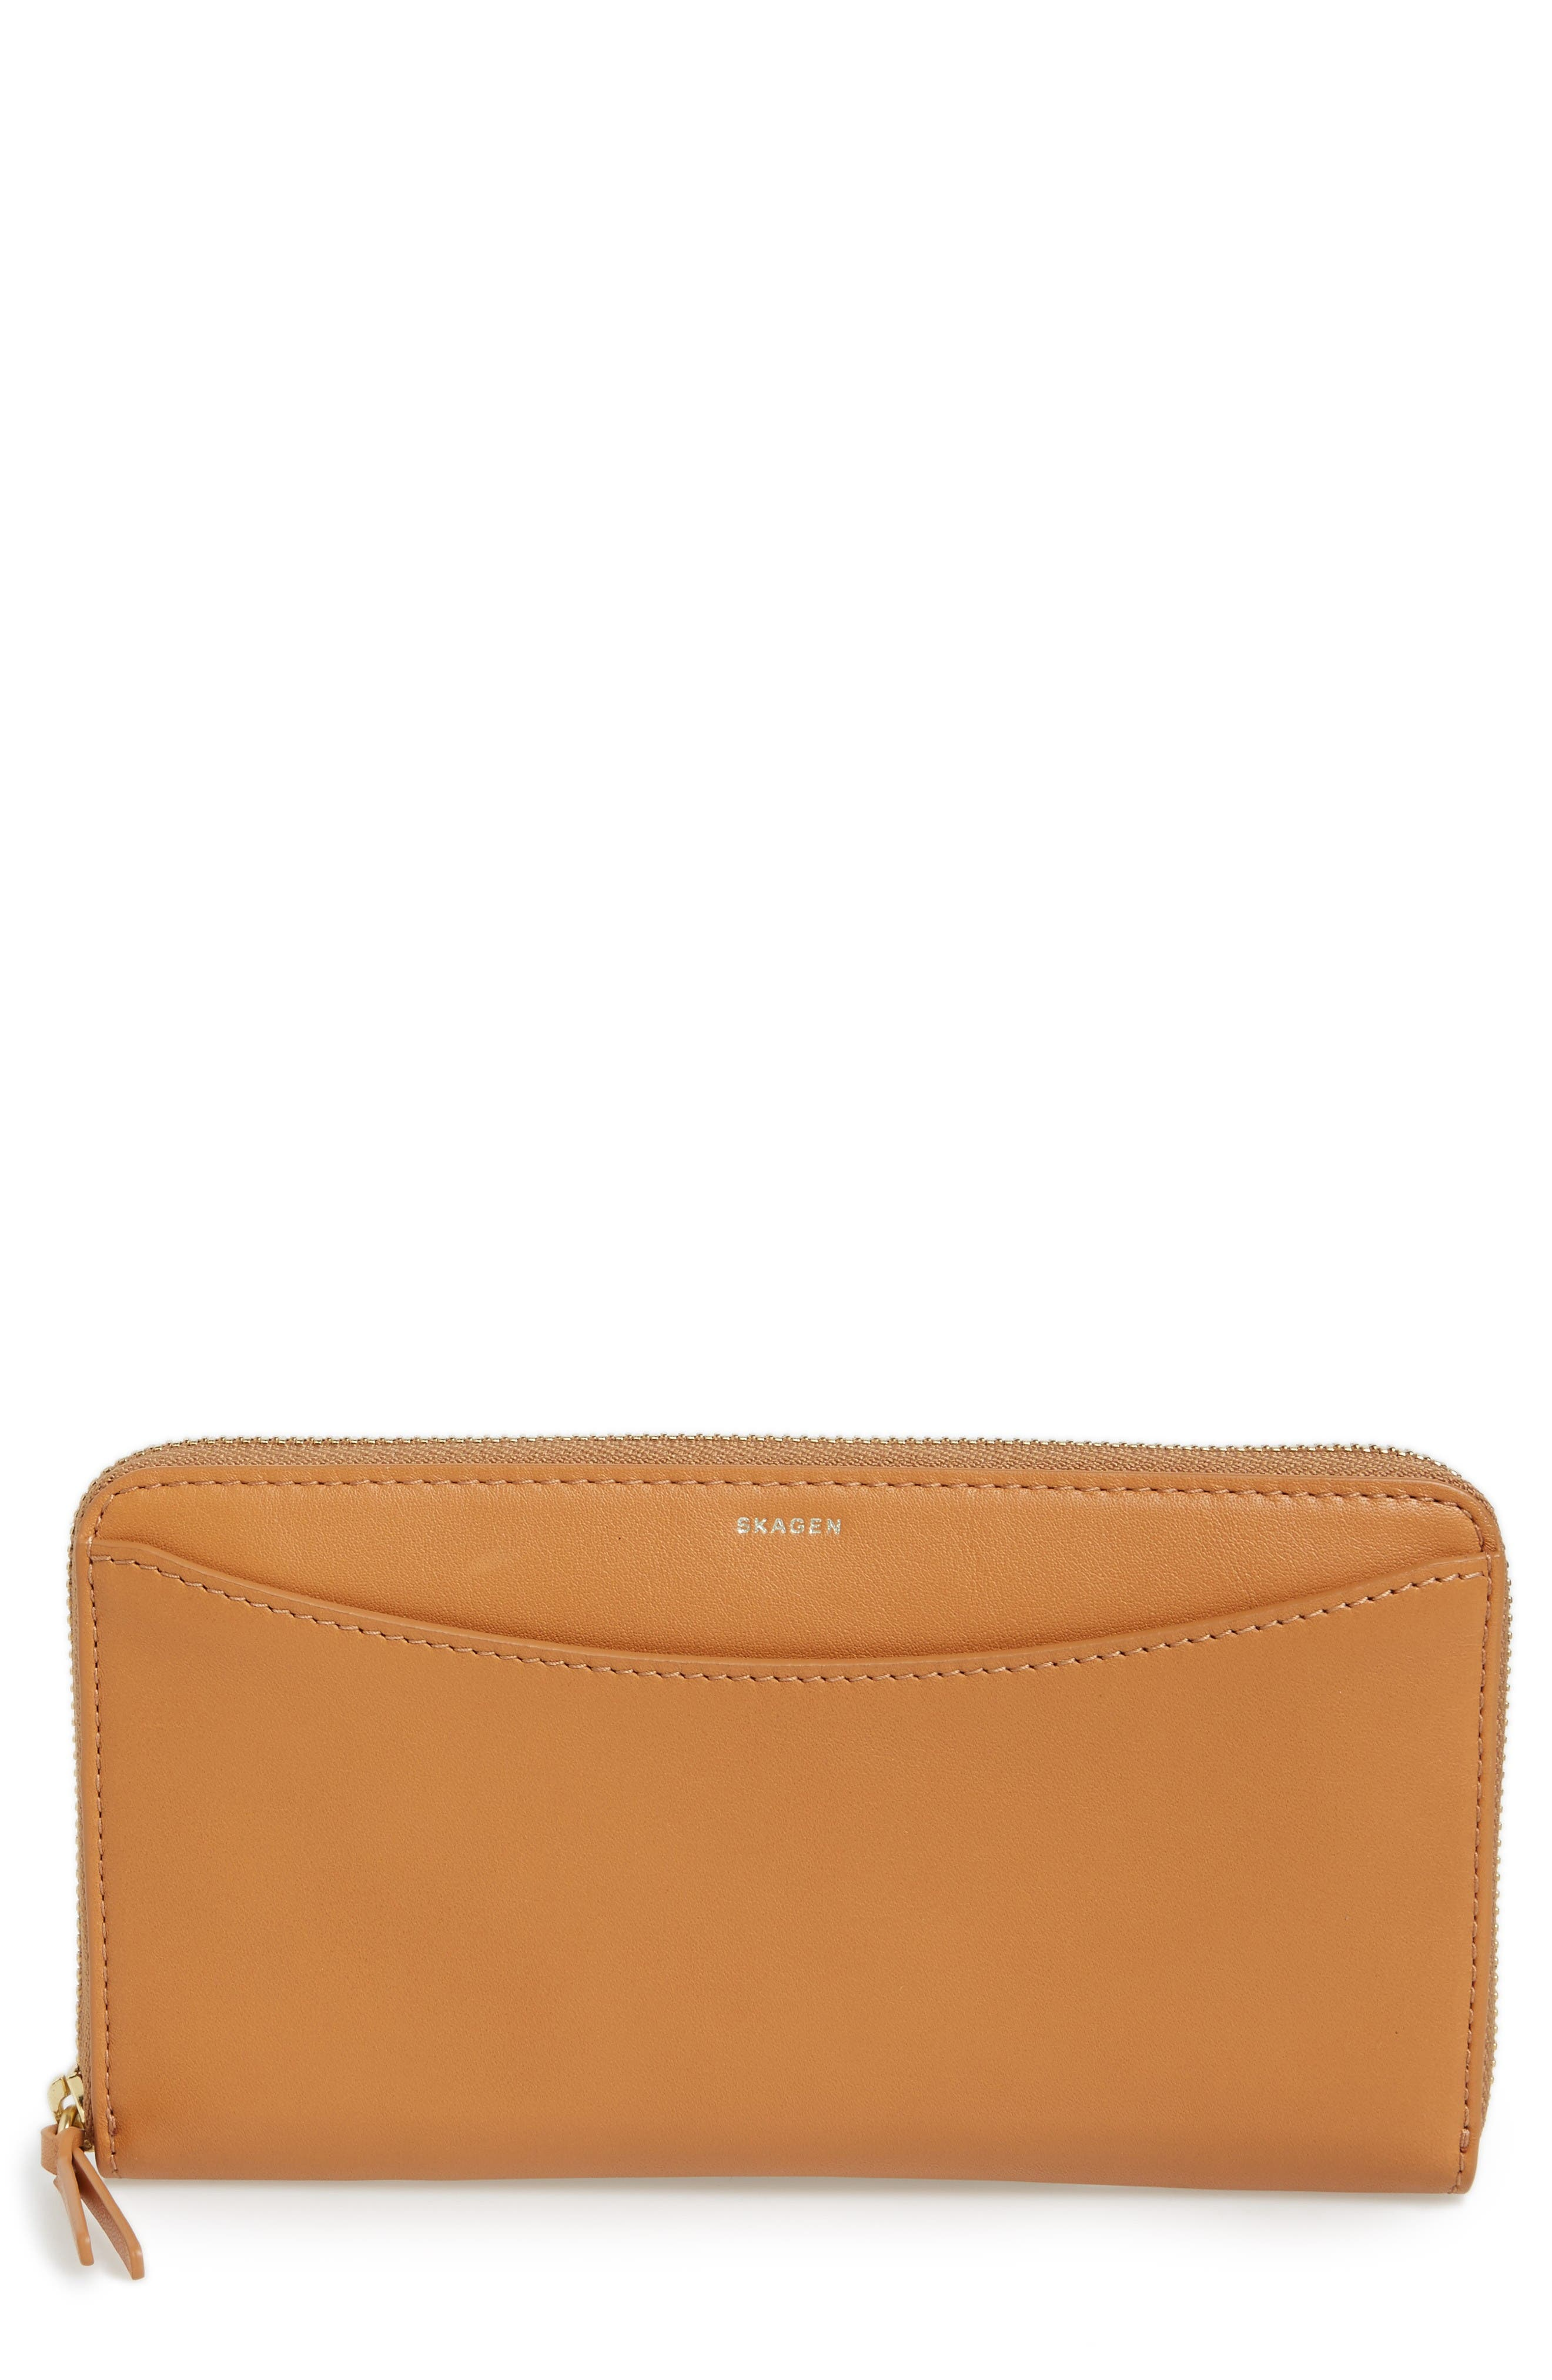 Main Image - Skagen Leather Continental Wallet